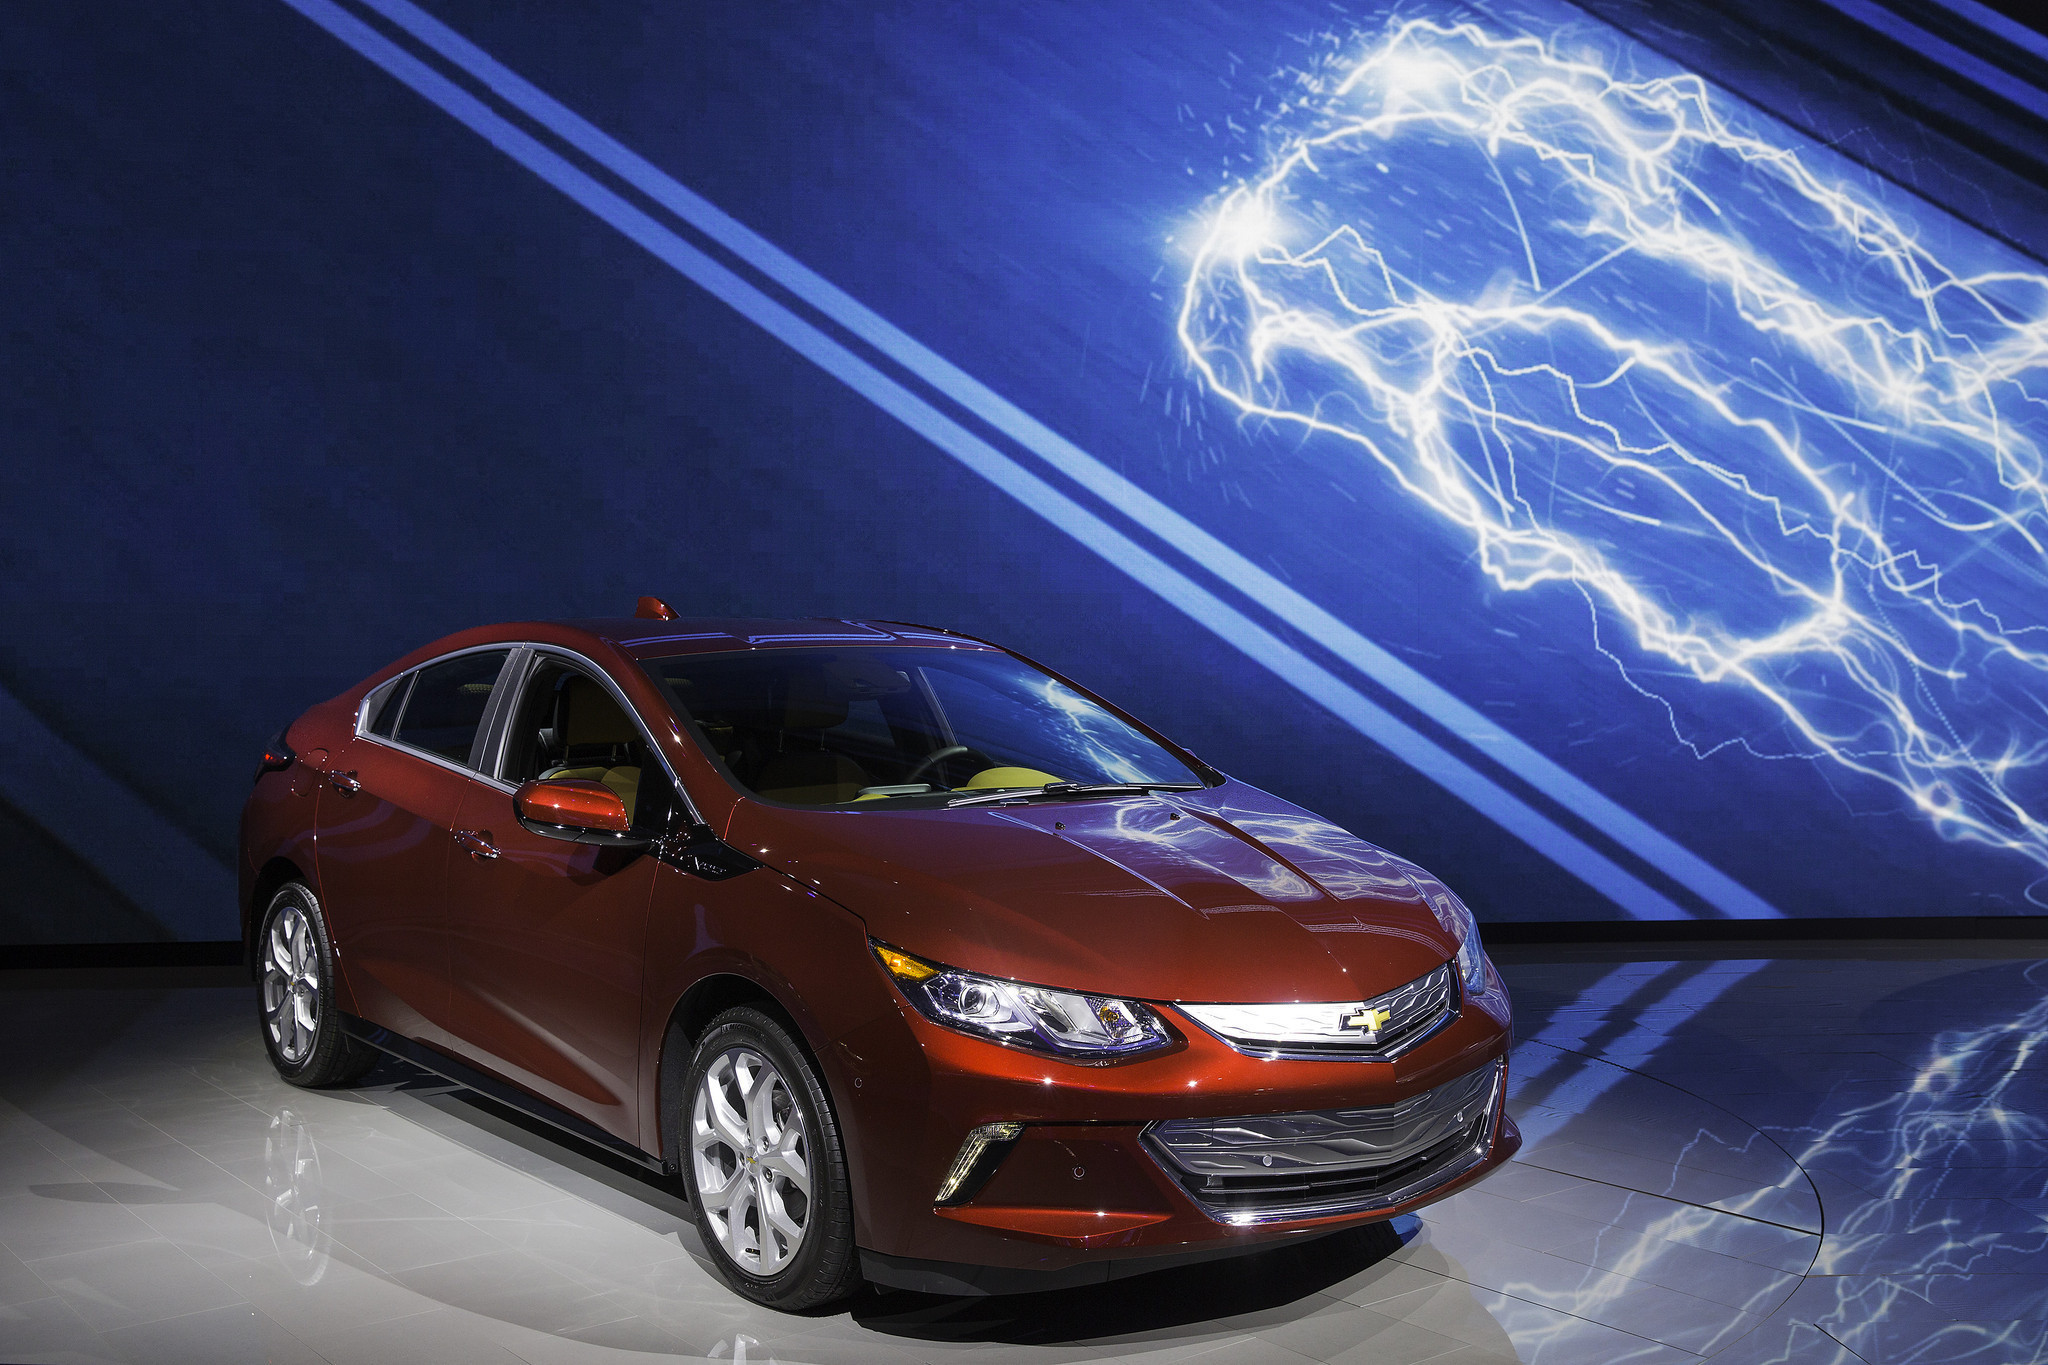 Electric Cars Vs Gas Cars >> California emissions rules charge debate over all-electric ...